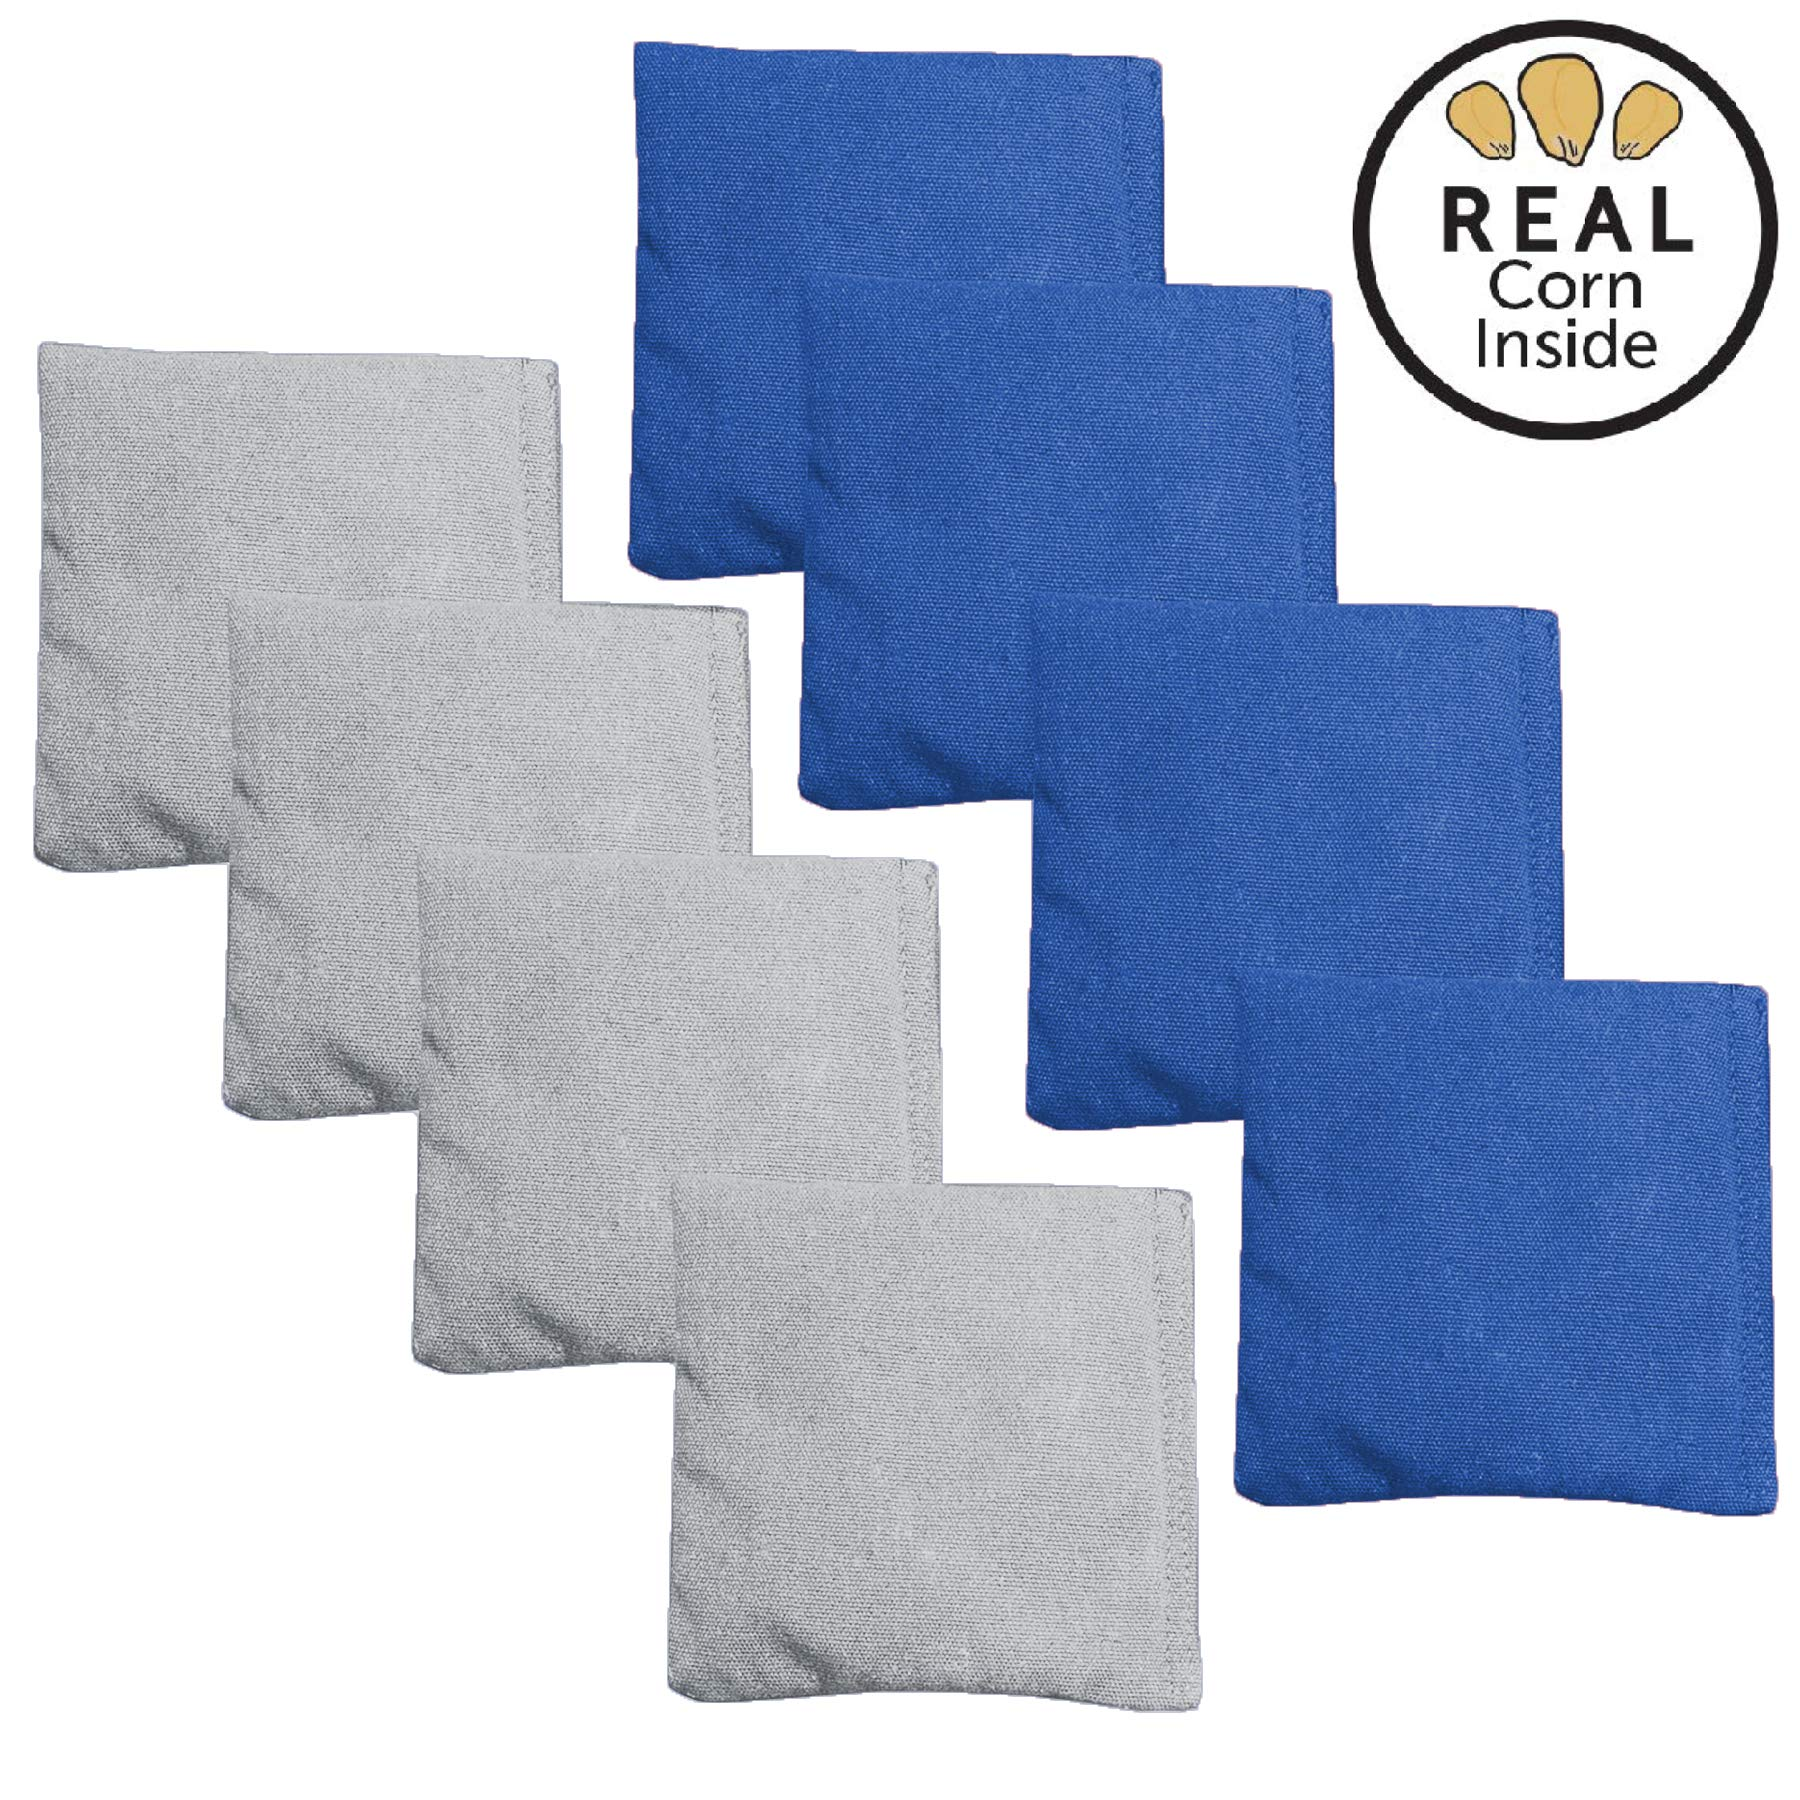 Corn Filled Cornhole Bags - Set of 8 Bean Bags for Corn Hole Game - Regulation Size & Weight - Blue & Gray by Play Platoon